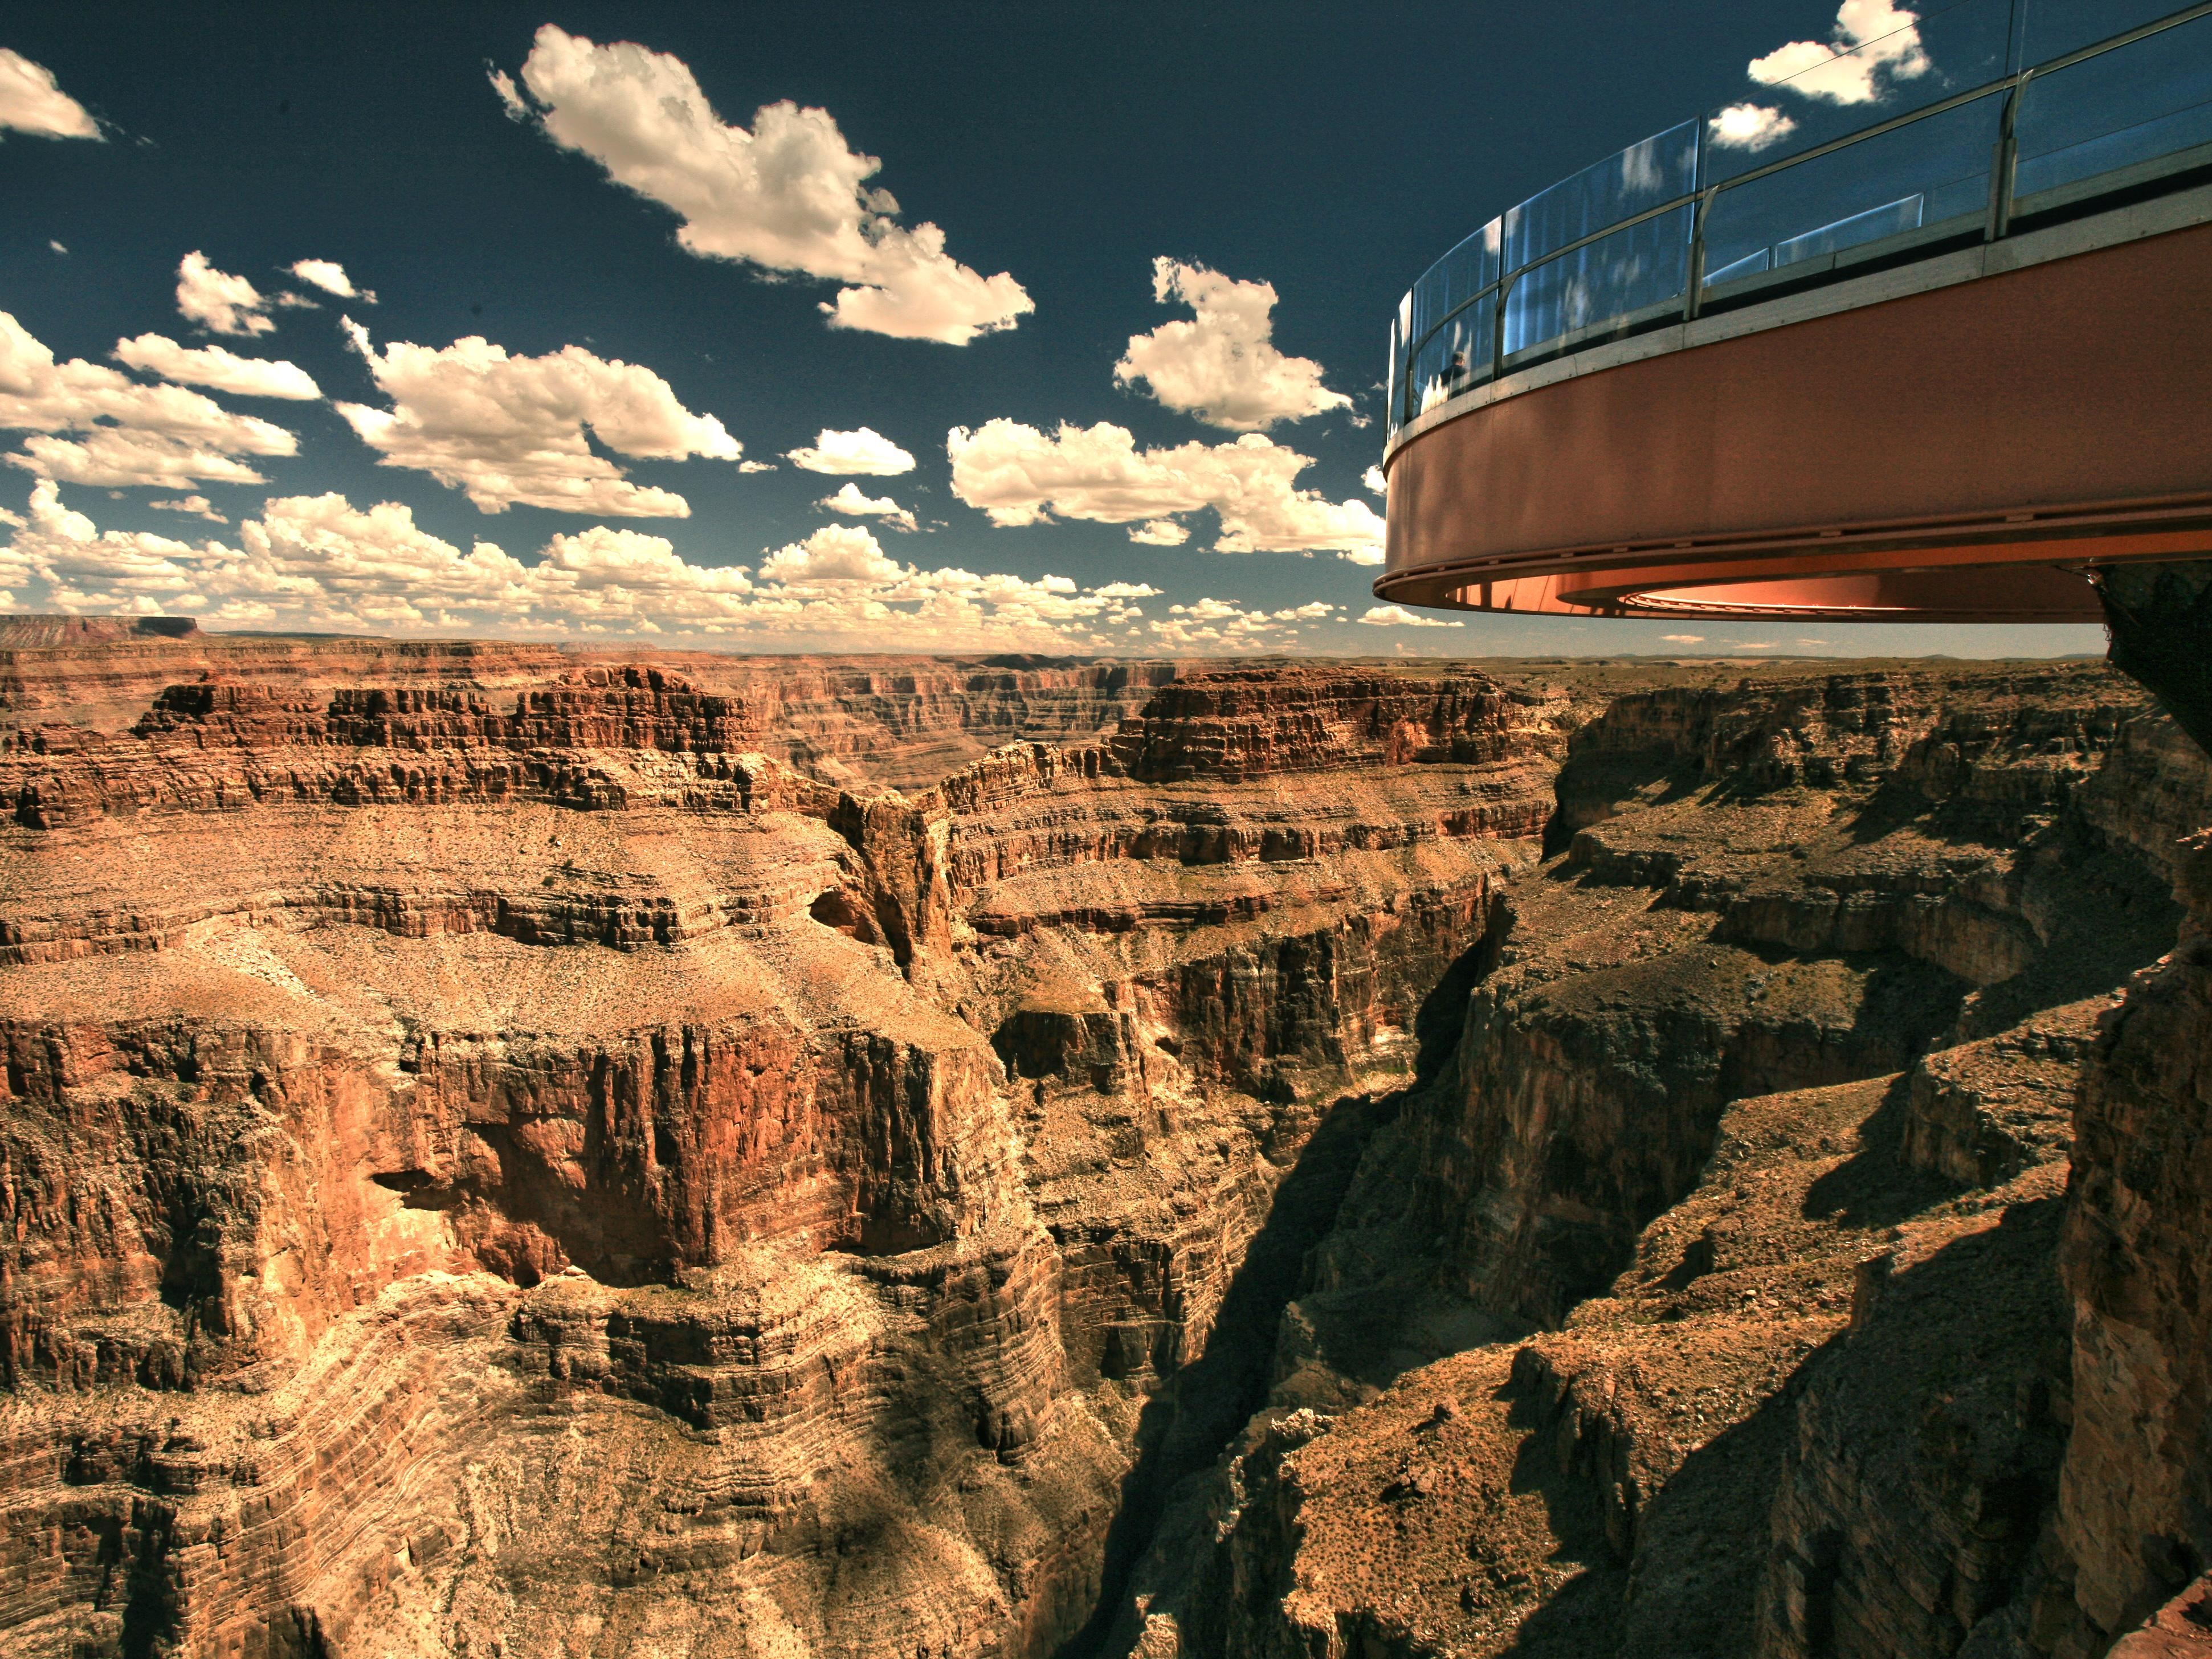 grand canyon west airport helicopter tours with La To Las Vegas Grand Canyon West Rim Skywalk 3 Day Tour 073 261 on Grand Canyon Skywalk Express Helicopter Tour besides Free Spirit Grand Canyon Helicopter Picnic Landing Tour furthermore LocationPhotoDirectLink G45963 D1943469 I35794332 Grand Canyon West 1Day Tour Skywalk Las Vegas Nevada in addition  also Locationphotodirectlink G60881 D3160367 I44184221 5 star grand canyon helicopter tours Boulder city nevada.